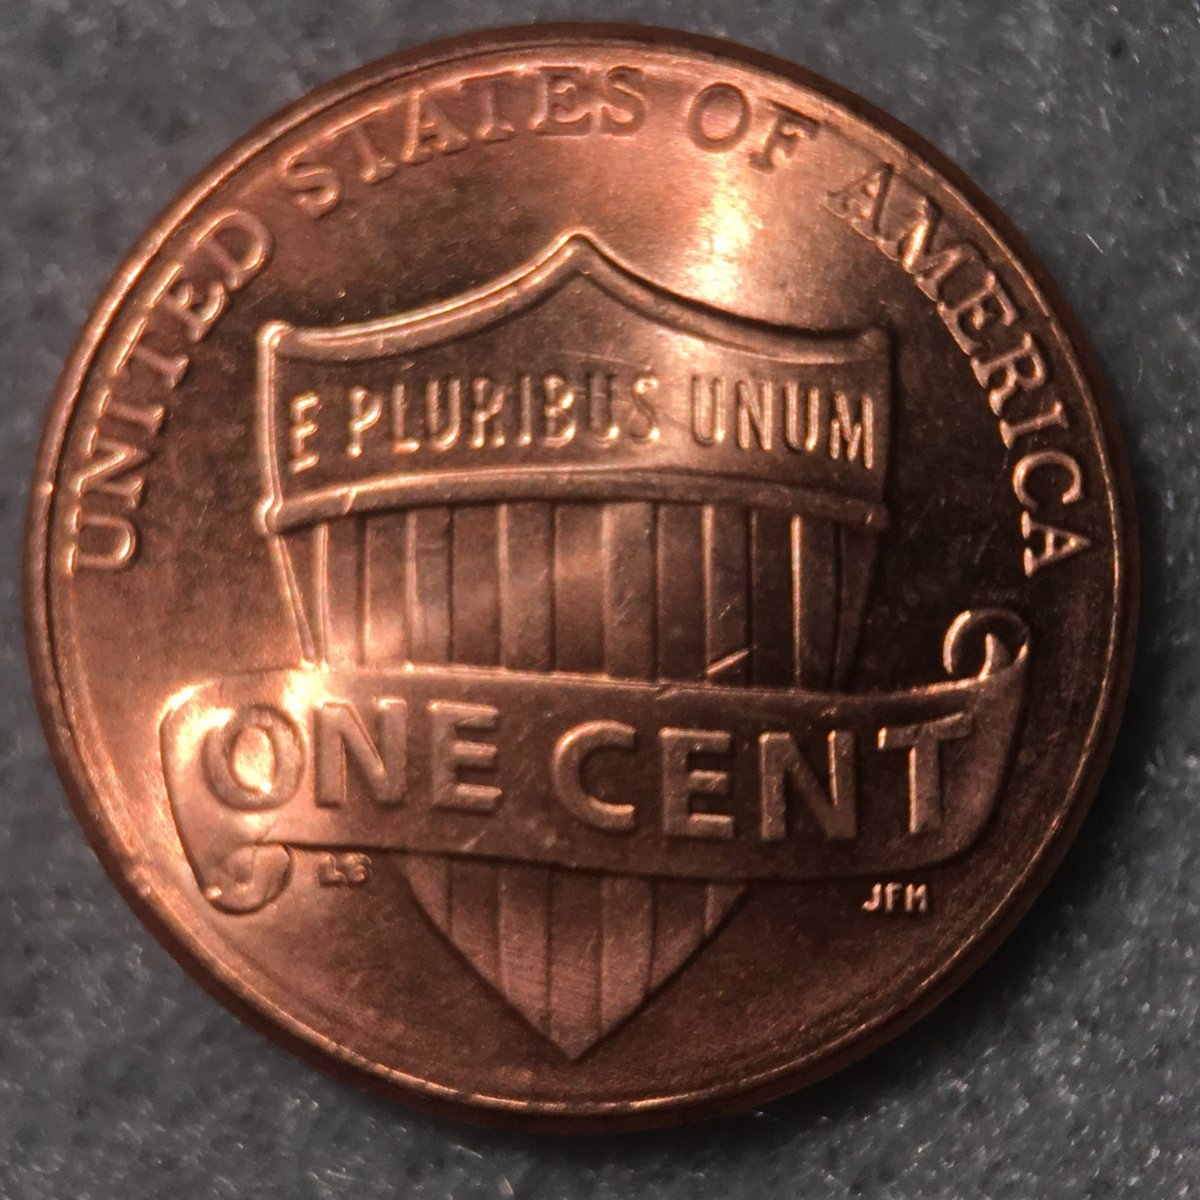 dent currency